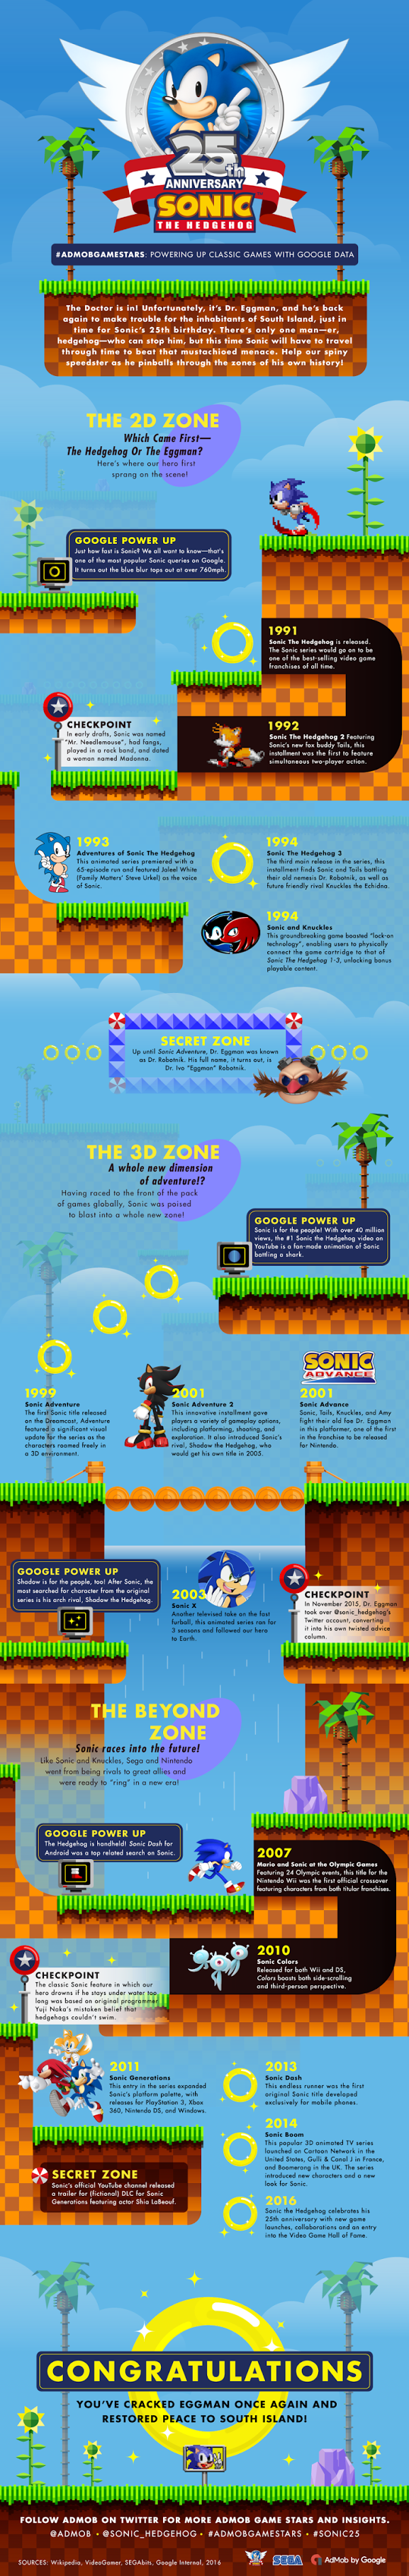 sonic_20th_infographic